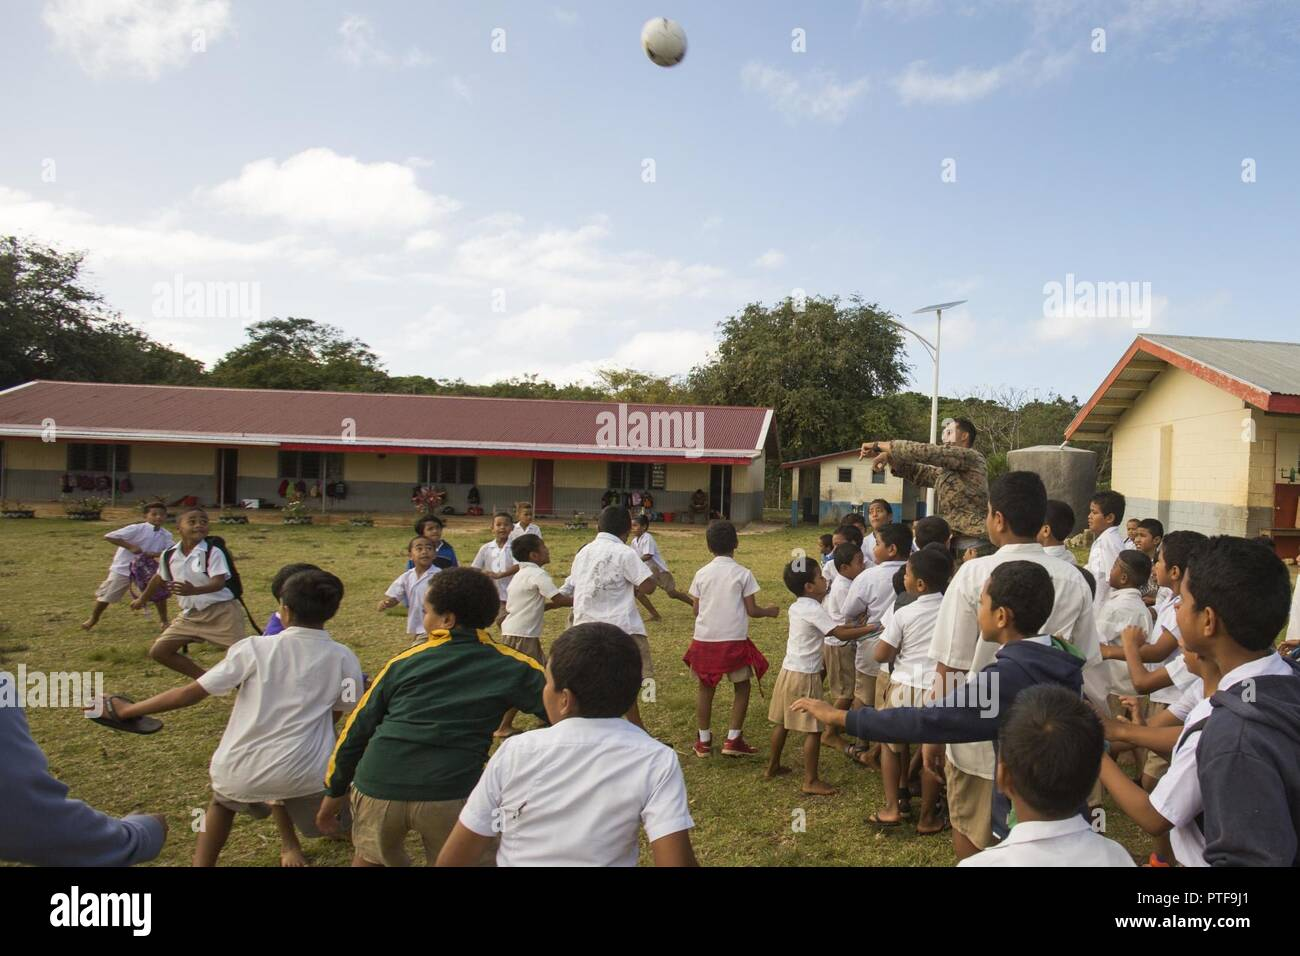 TONGATAPU ISLAND, Tonga — Sgt. Joseph Pritchard throws a ball for children while volunteering at a local elementary school July 20 on Tongatapu Island, Tonga. The volunteers spent part of the day cleaning up the premises, and then participated in a variety of activities with the children during recess. Pritchard is a mortarman with 3rd Battalion, 4th Marine Regiment, currently deployed to Koa Moana 17, and a Port St. Lucy, Florida, native. - Stock Image